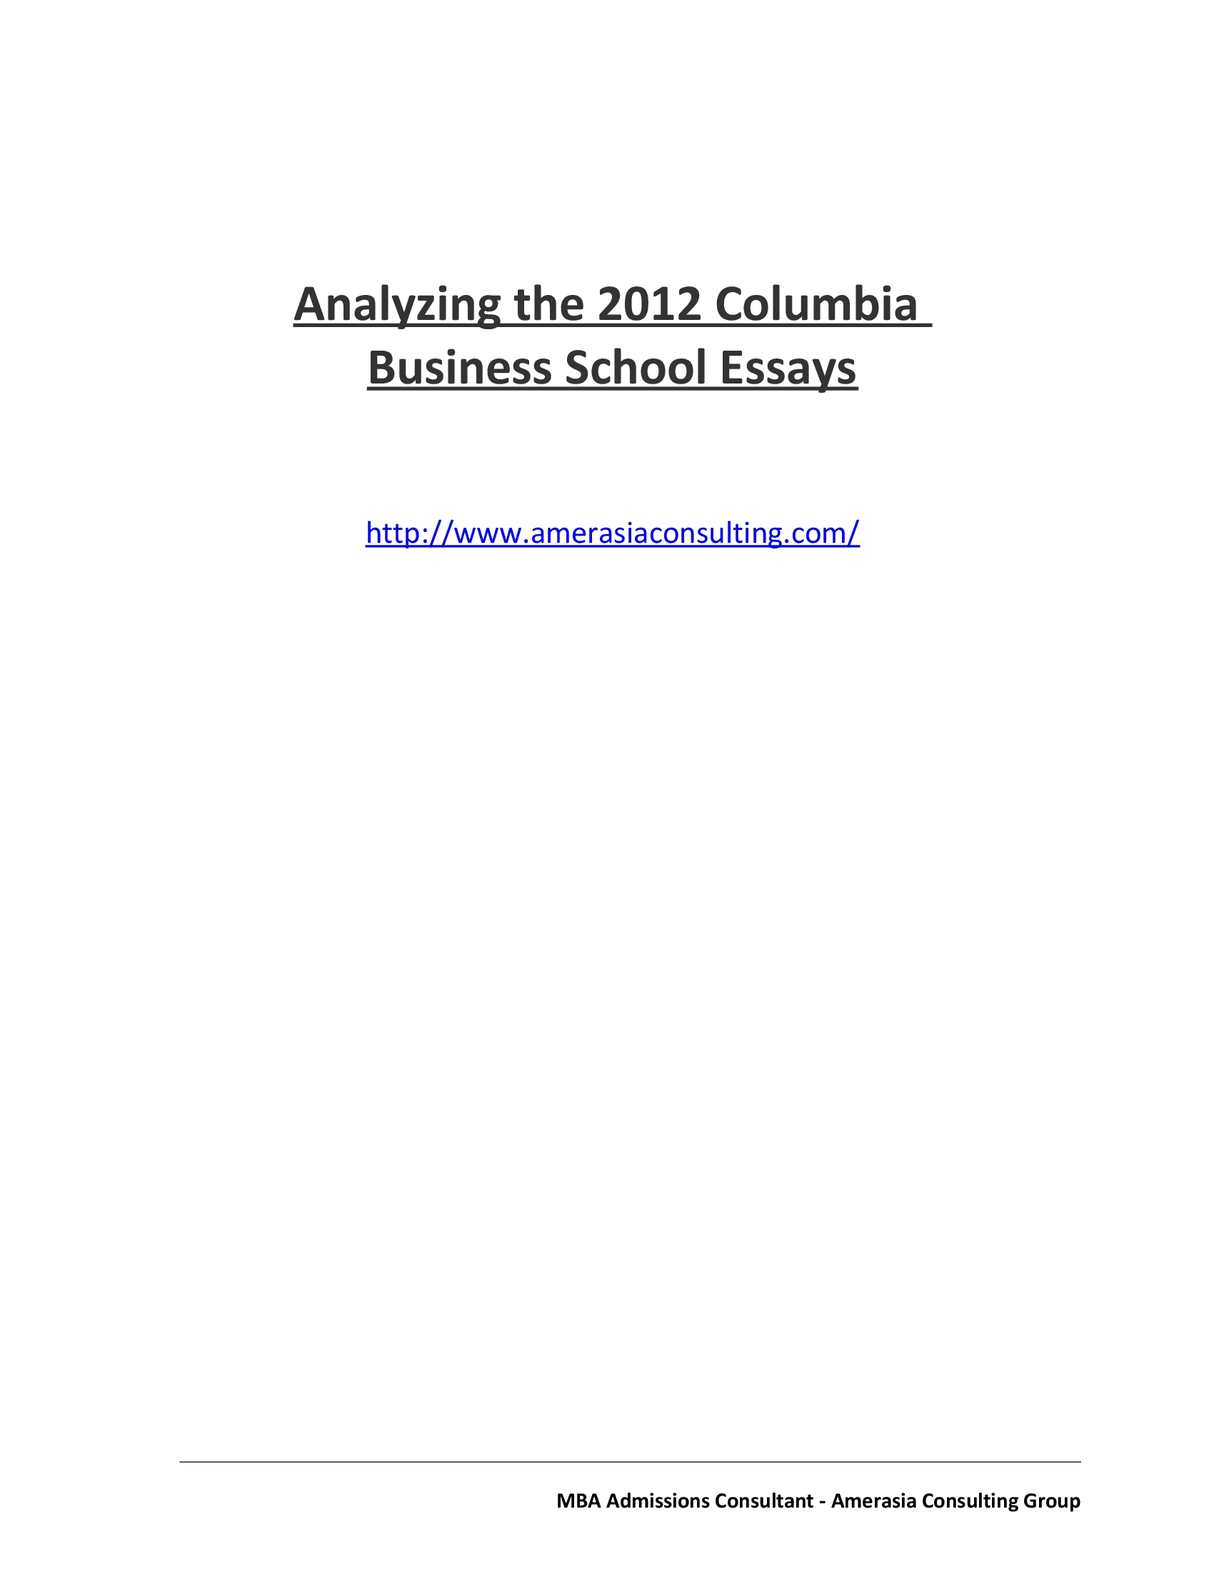 017 Essay Example Columbia Essays Analyzing The Business School Analys Admission Analysis Help Examples Shocking Mba That Worked Undergraduate Full